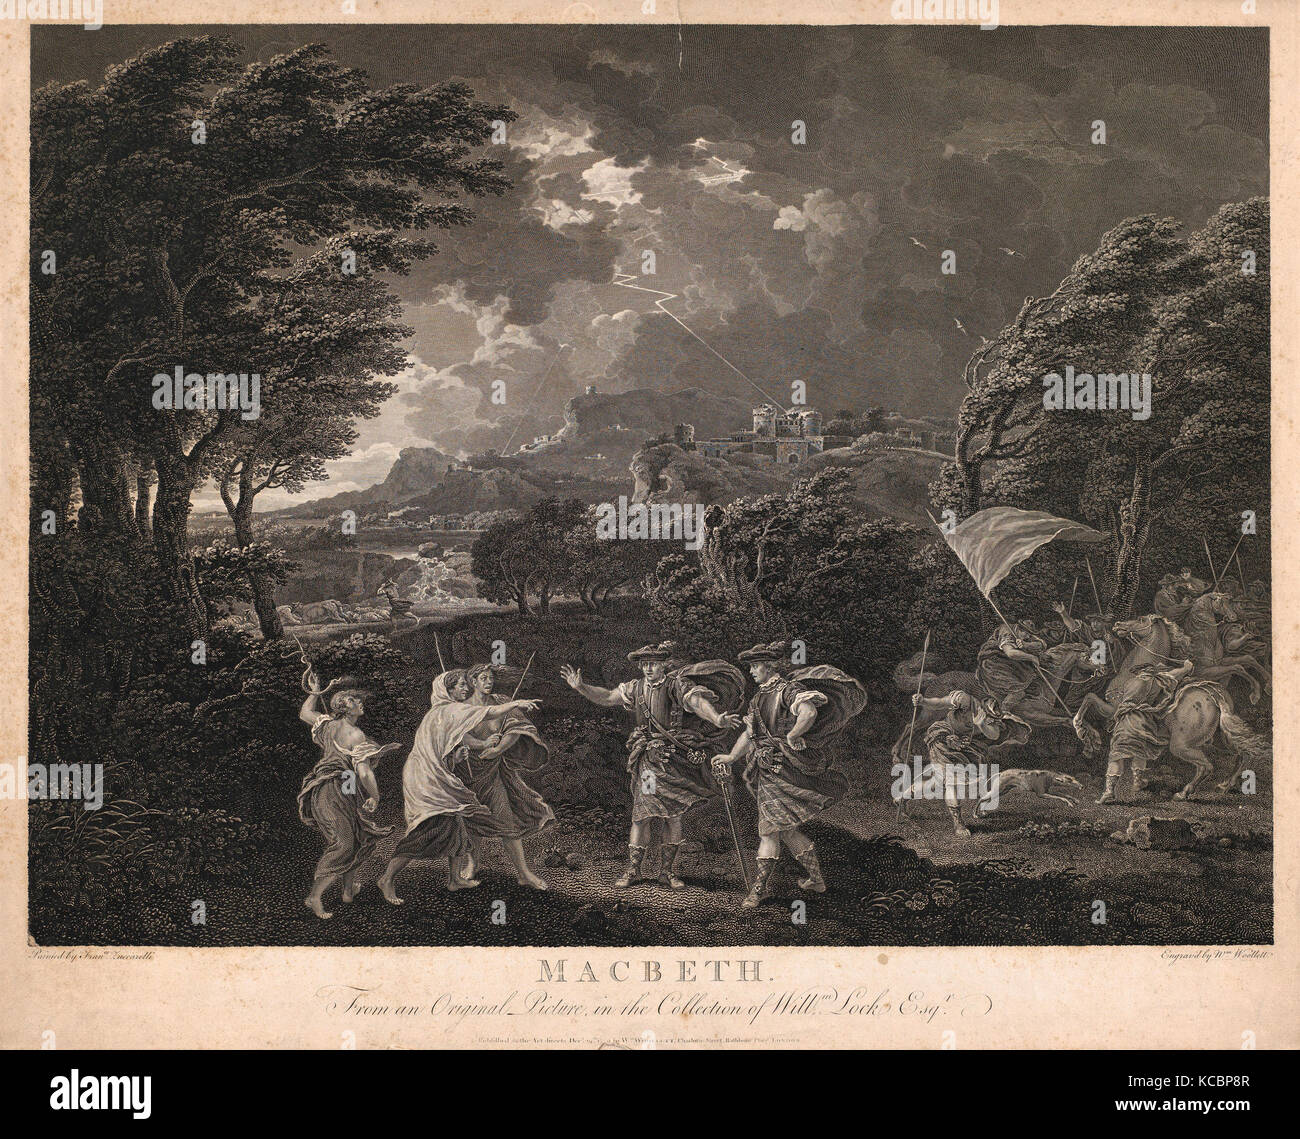 the influence of the witches on macbeths decisions in the play macbeth Free essay: macbeths downfall in the beginning of the play macbeth, macbeth is a successful and noble thane of glamis the witches tell macbeth prophecies.